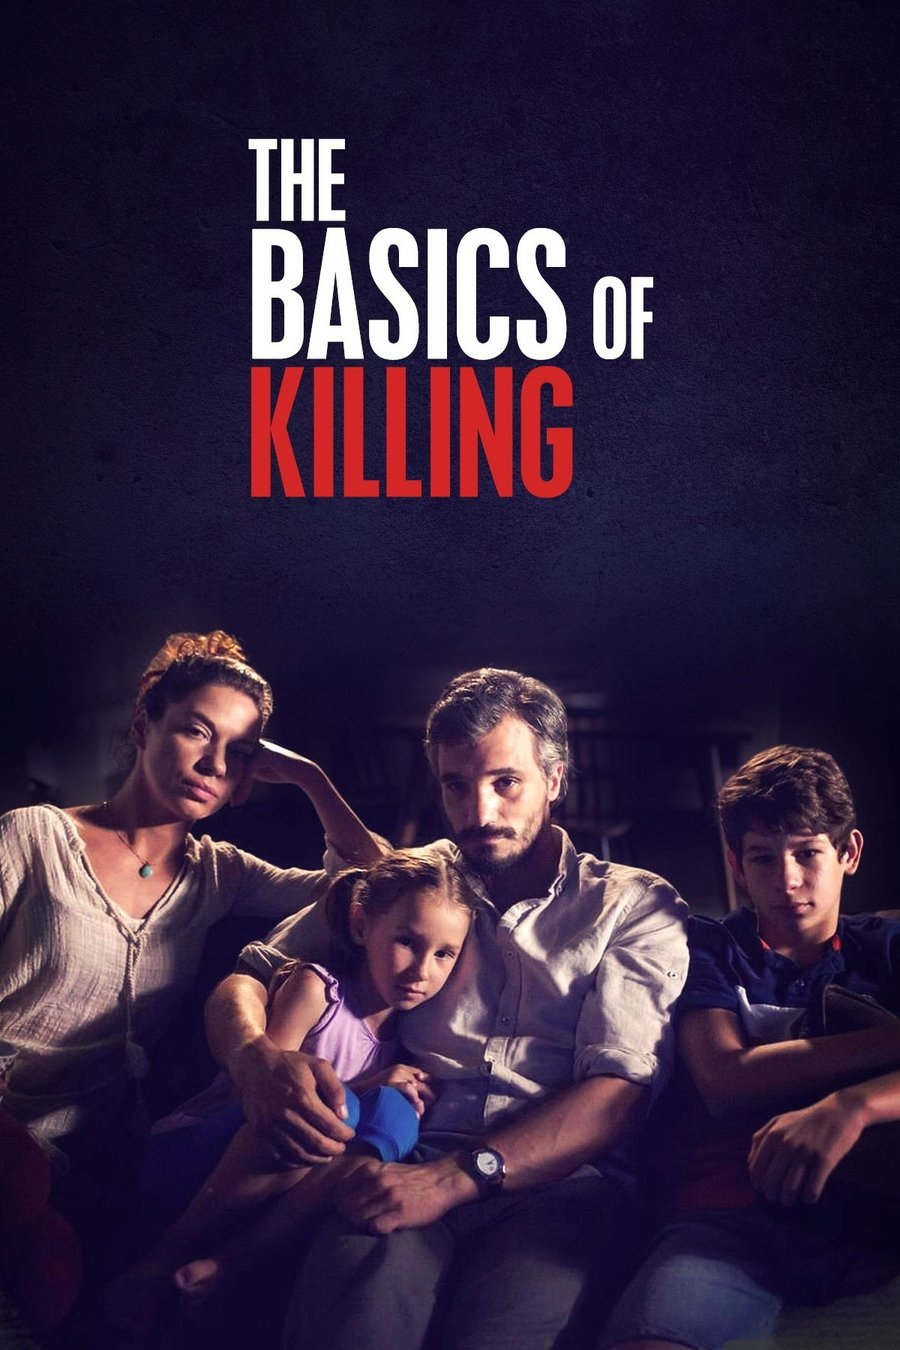 The Basics of Killing